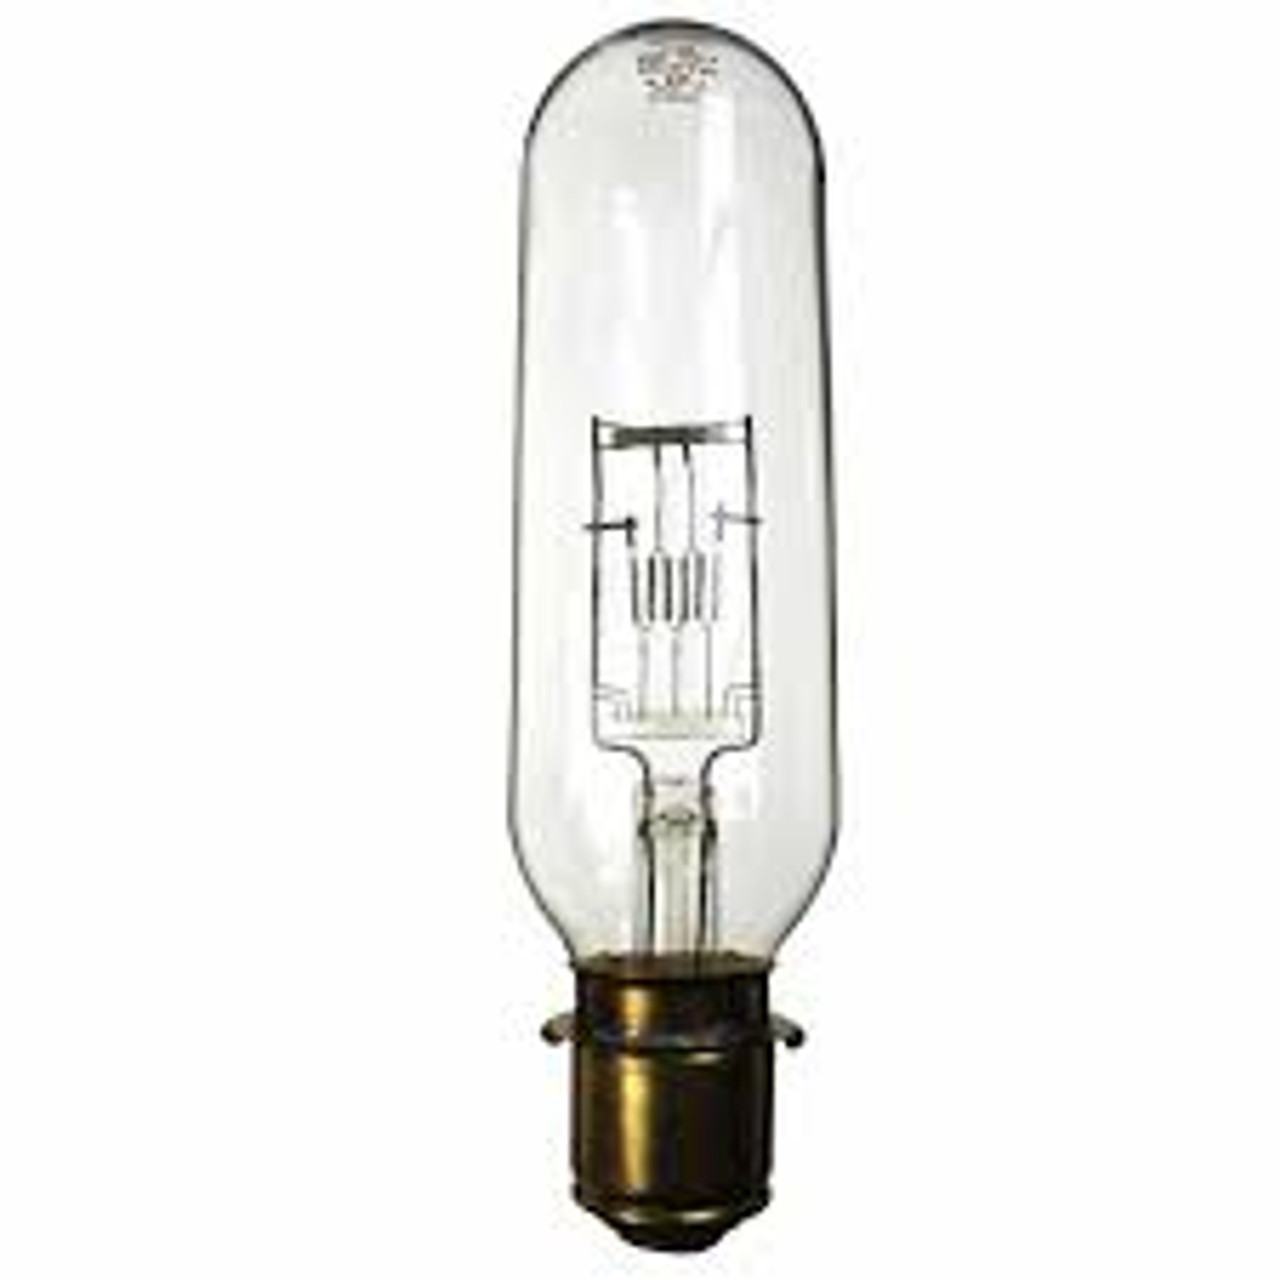 Weber Machine Corp. - Synchrofilm E, H - 35mm Movie Projector - Replacement Bulb Model- DSB, 7.5A/T8SC (sound)